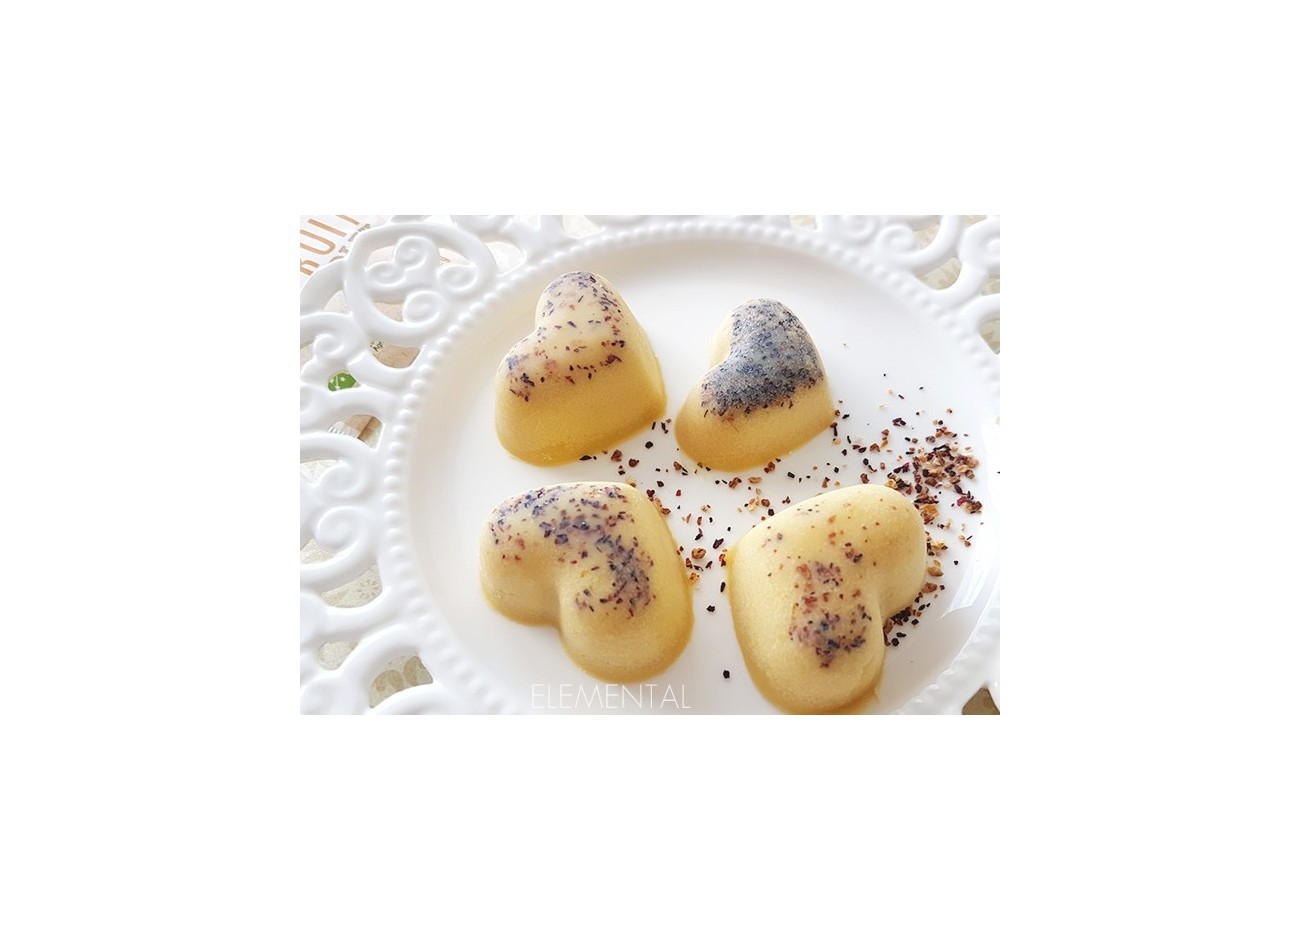 Praline de baie - Bath melts